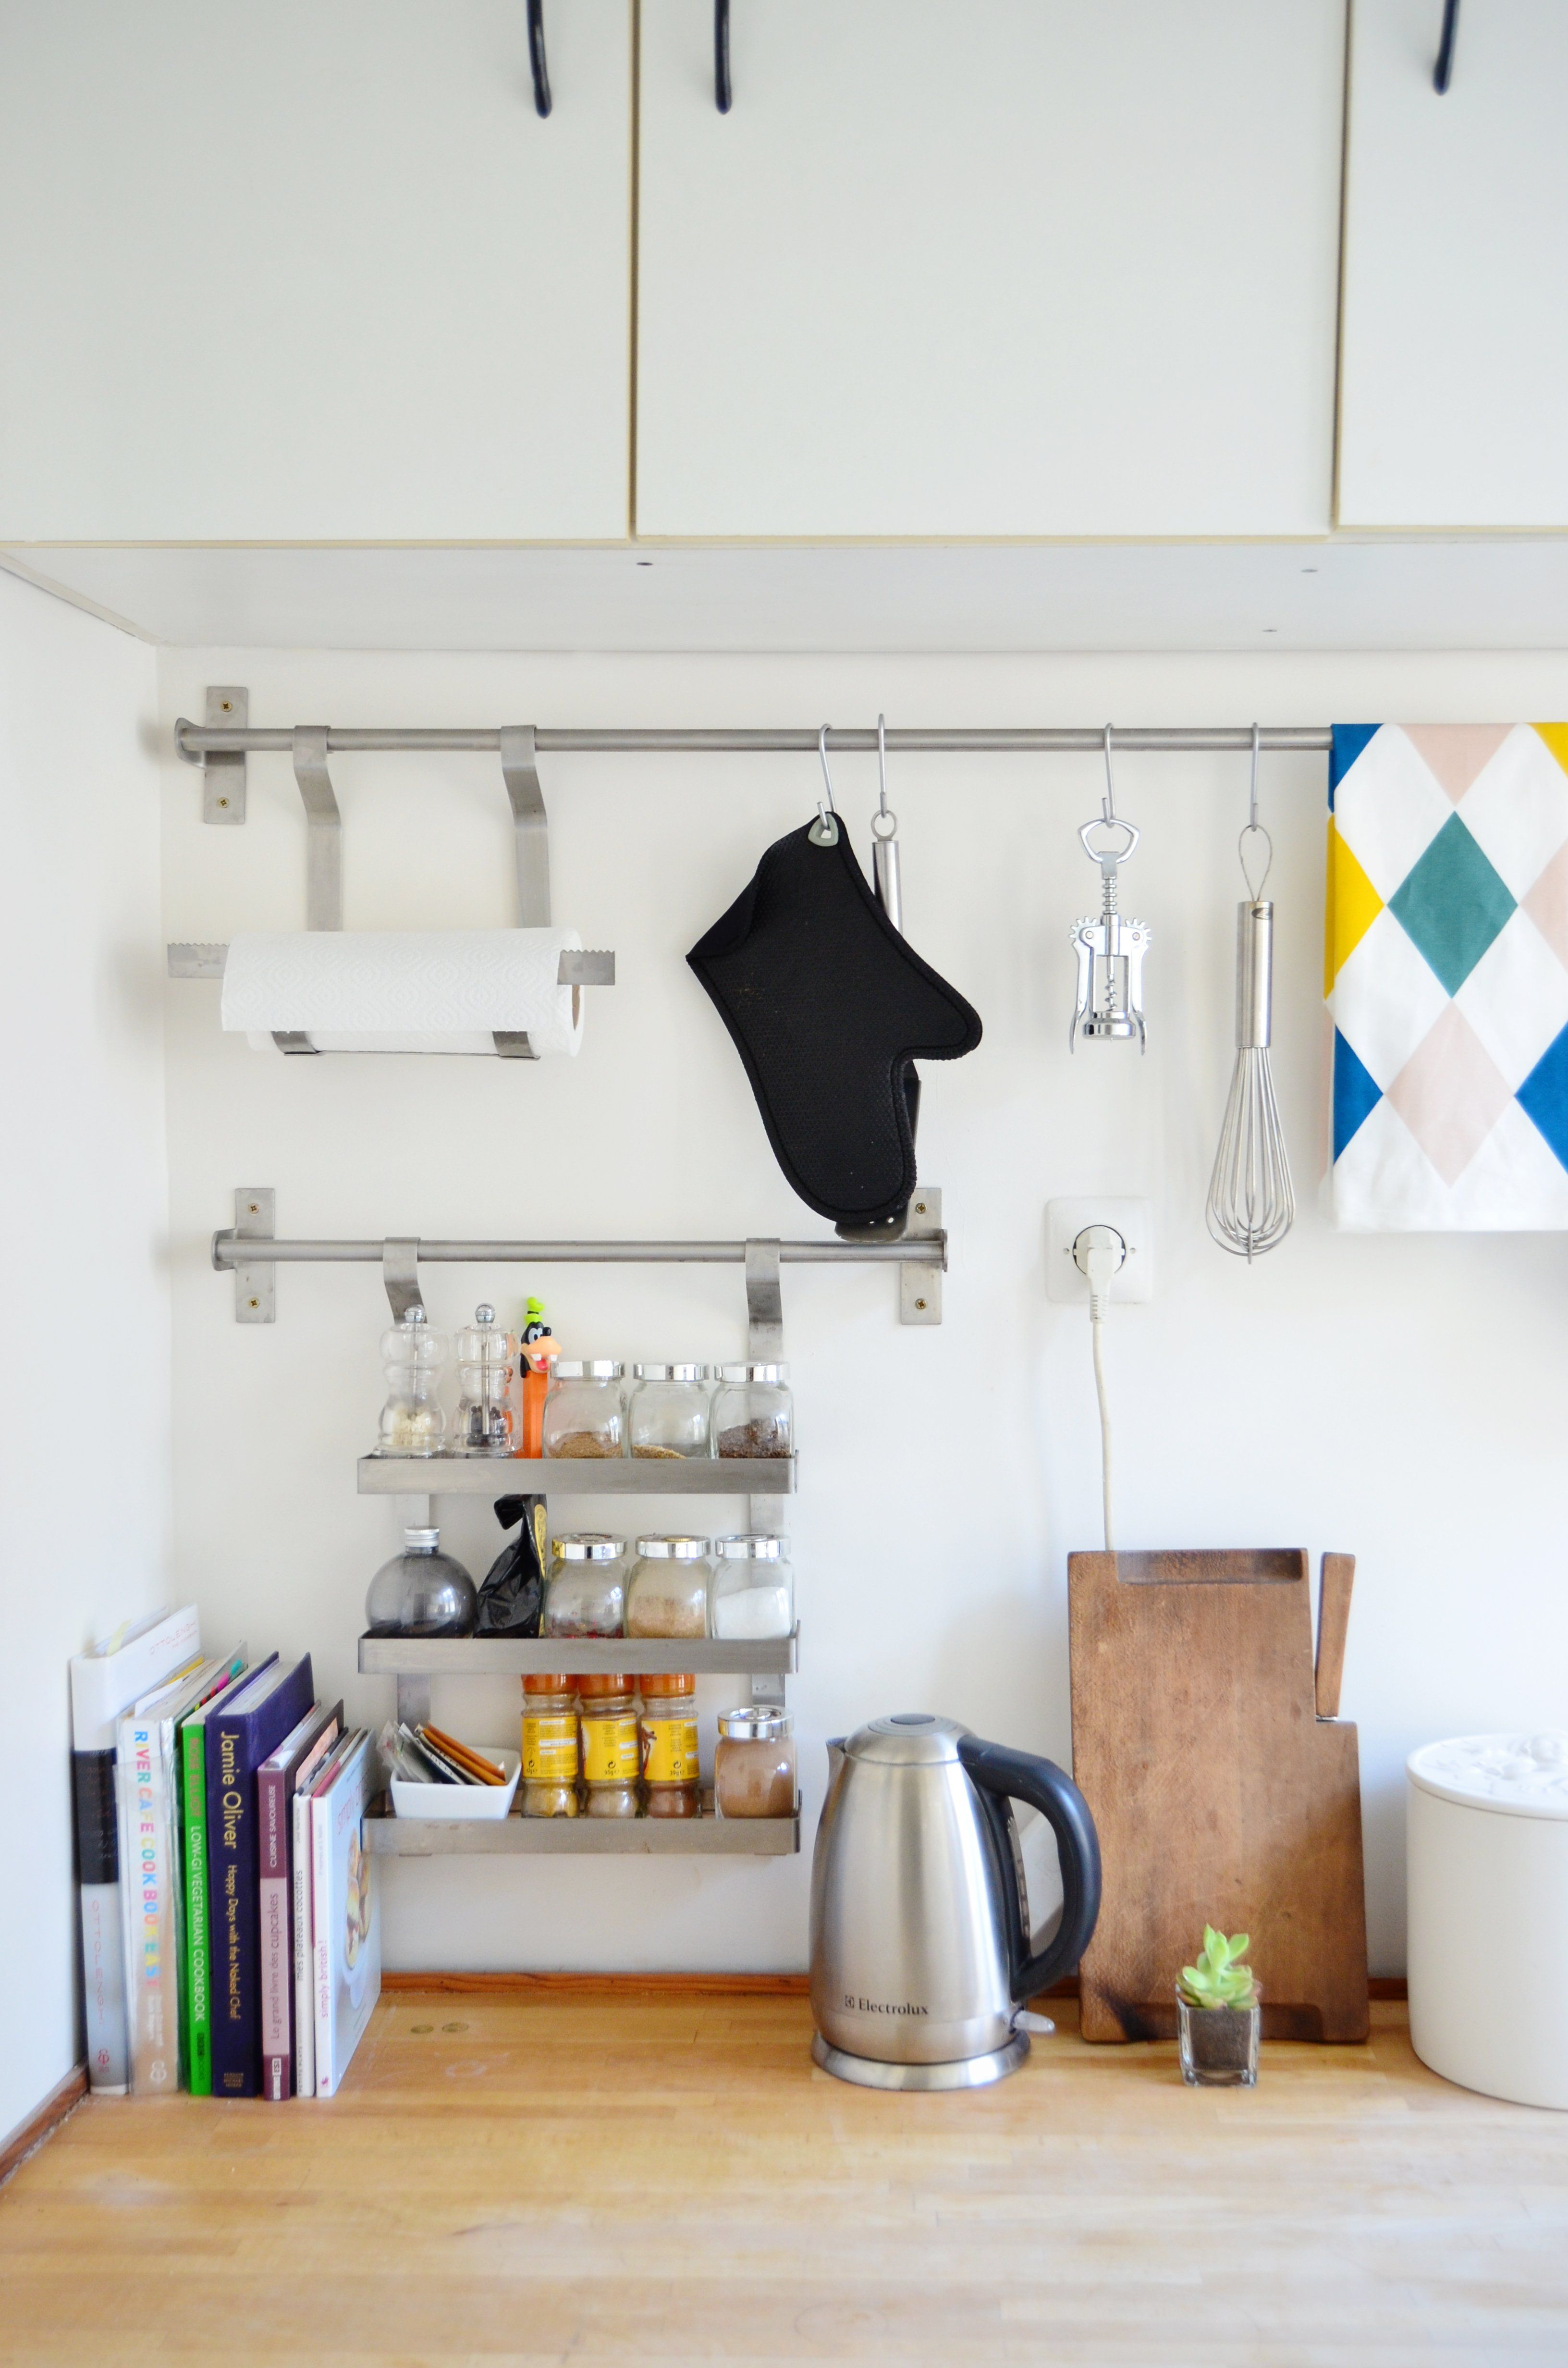 10 Smart Solutions for Small-Space Kitchens